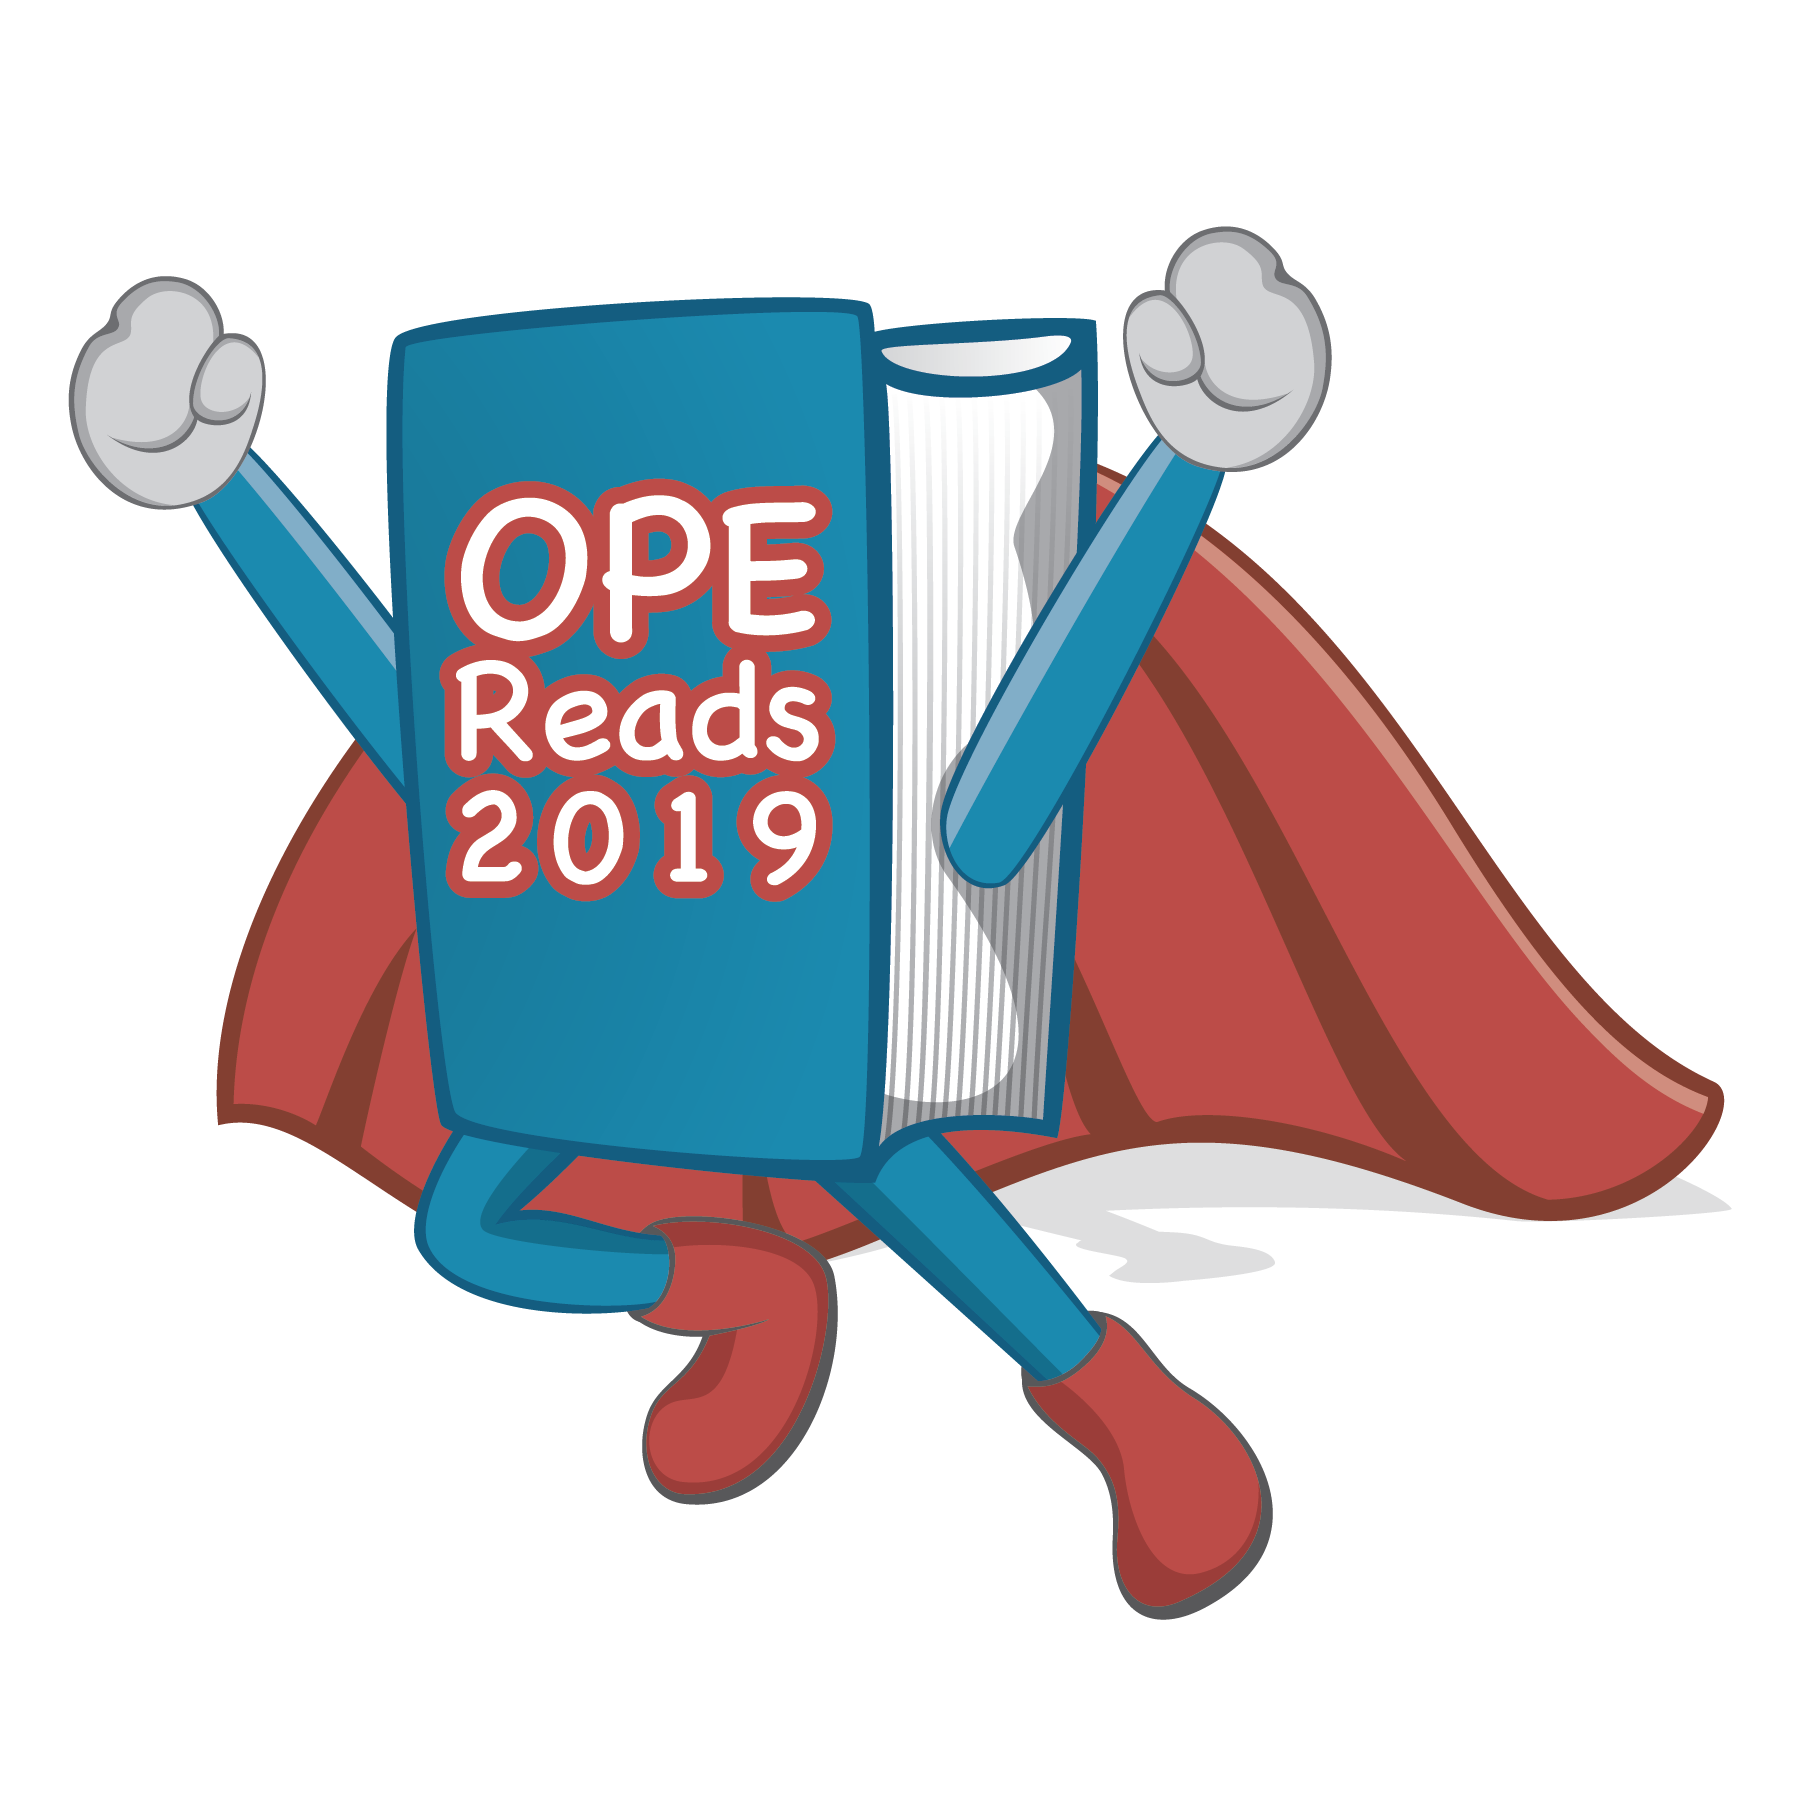 "Be a Reading Superhero! - We are proud to announce the annual launch of OPE READS, a 16-week, school-wide reading competition that challenges students to read books outside of the classroom to earn prizes and medals as they achieve their reading minute goals. This year's slogan is ""Be A Reading Superhero!"" with a fun hero theme."